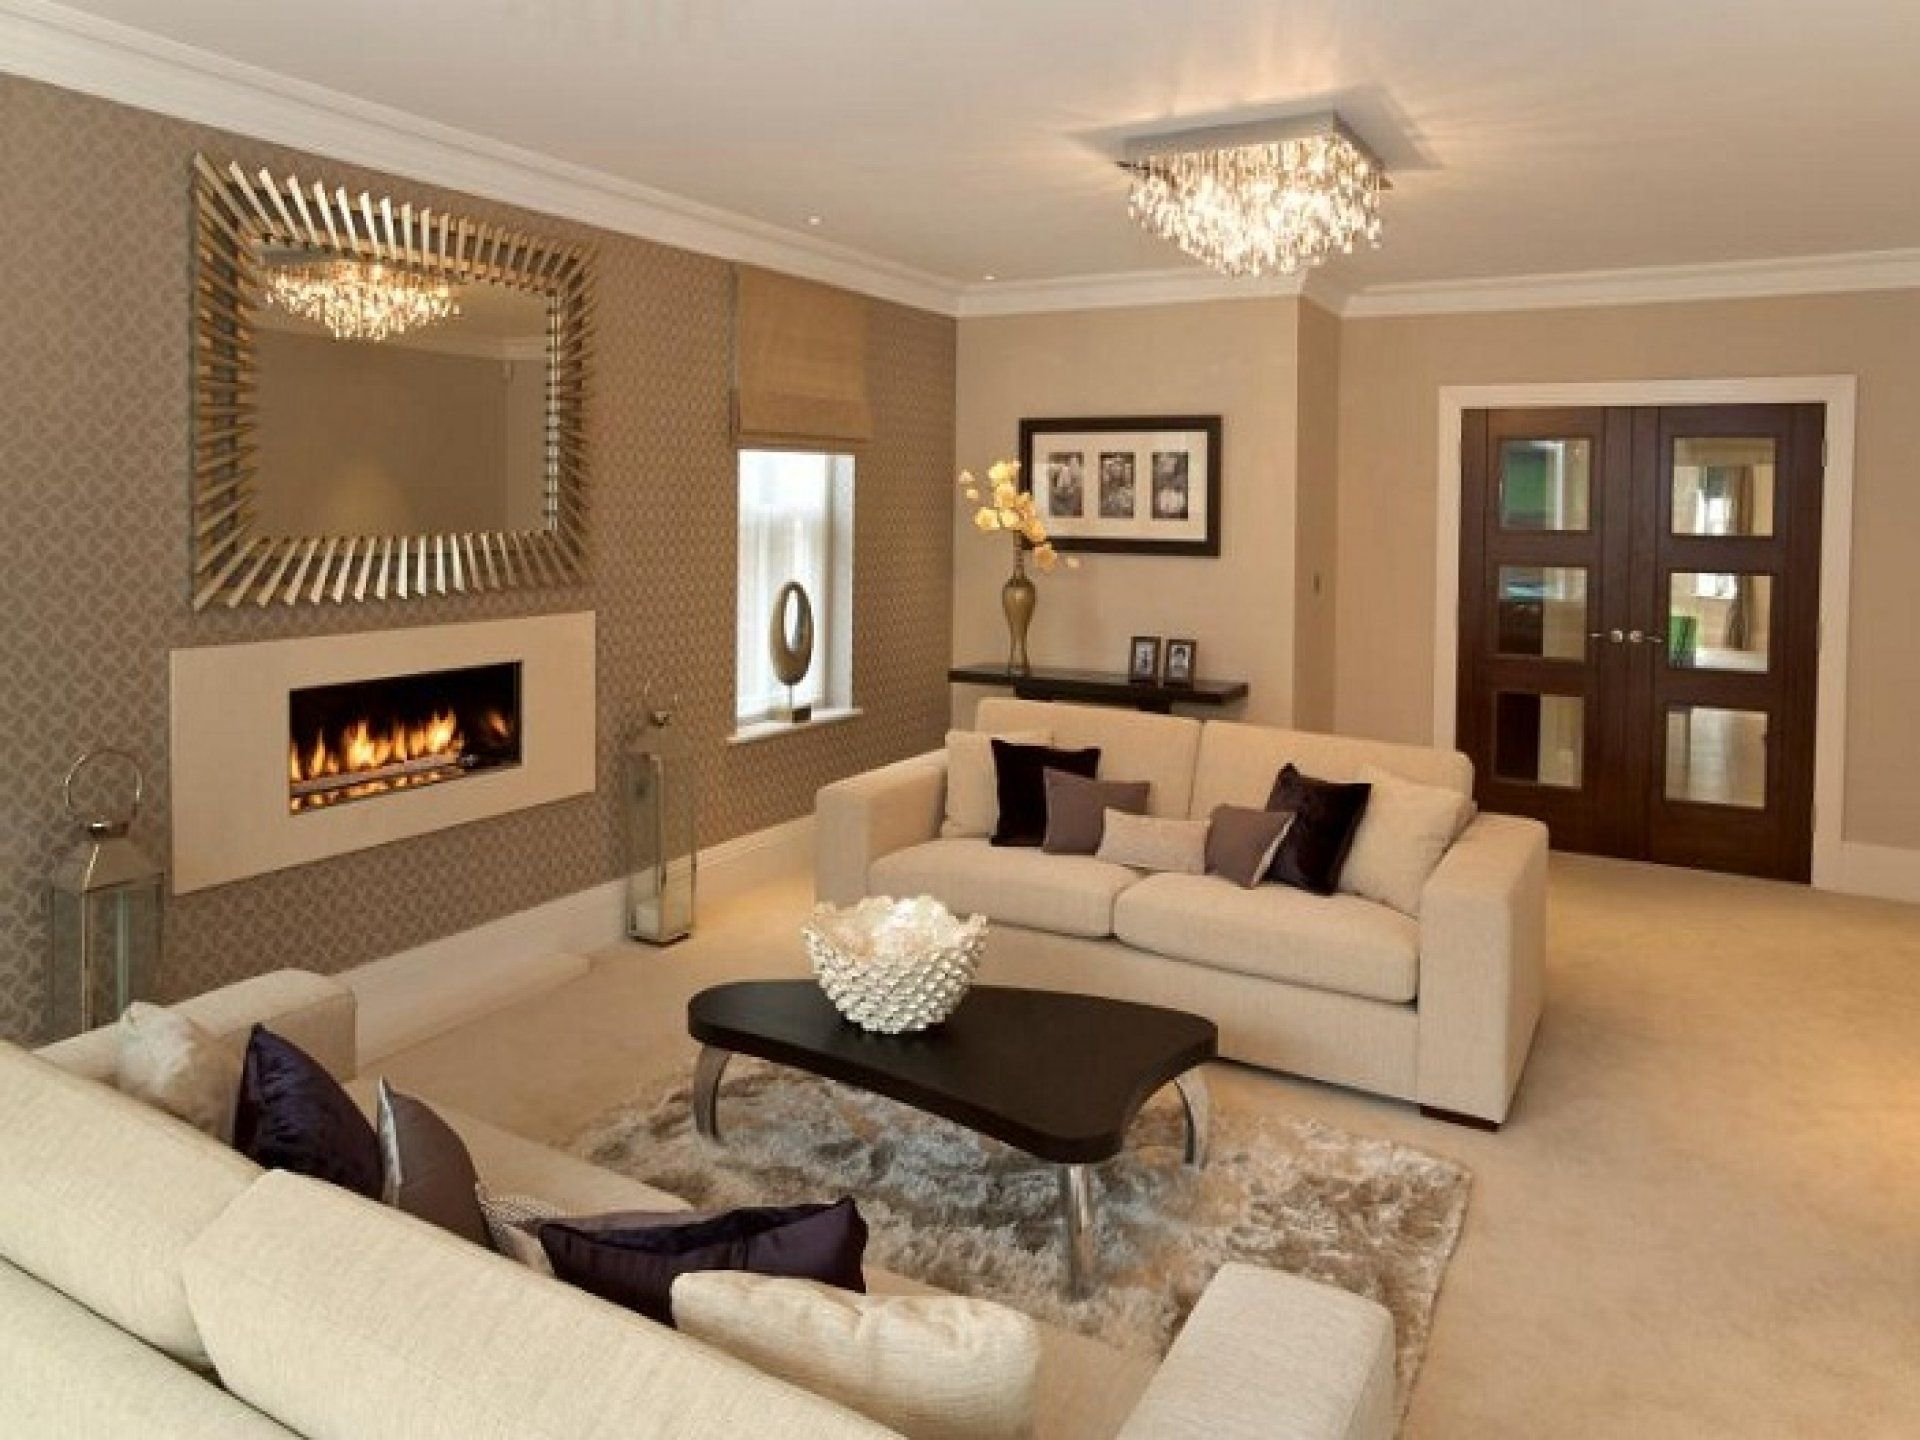 Awesome Classy Design Ideas Of Home Living Room With Beige Wall Paint Also